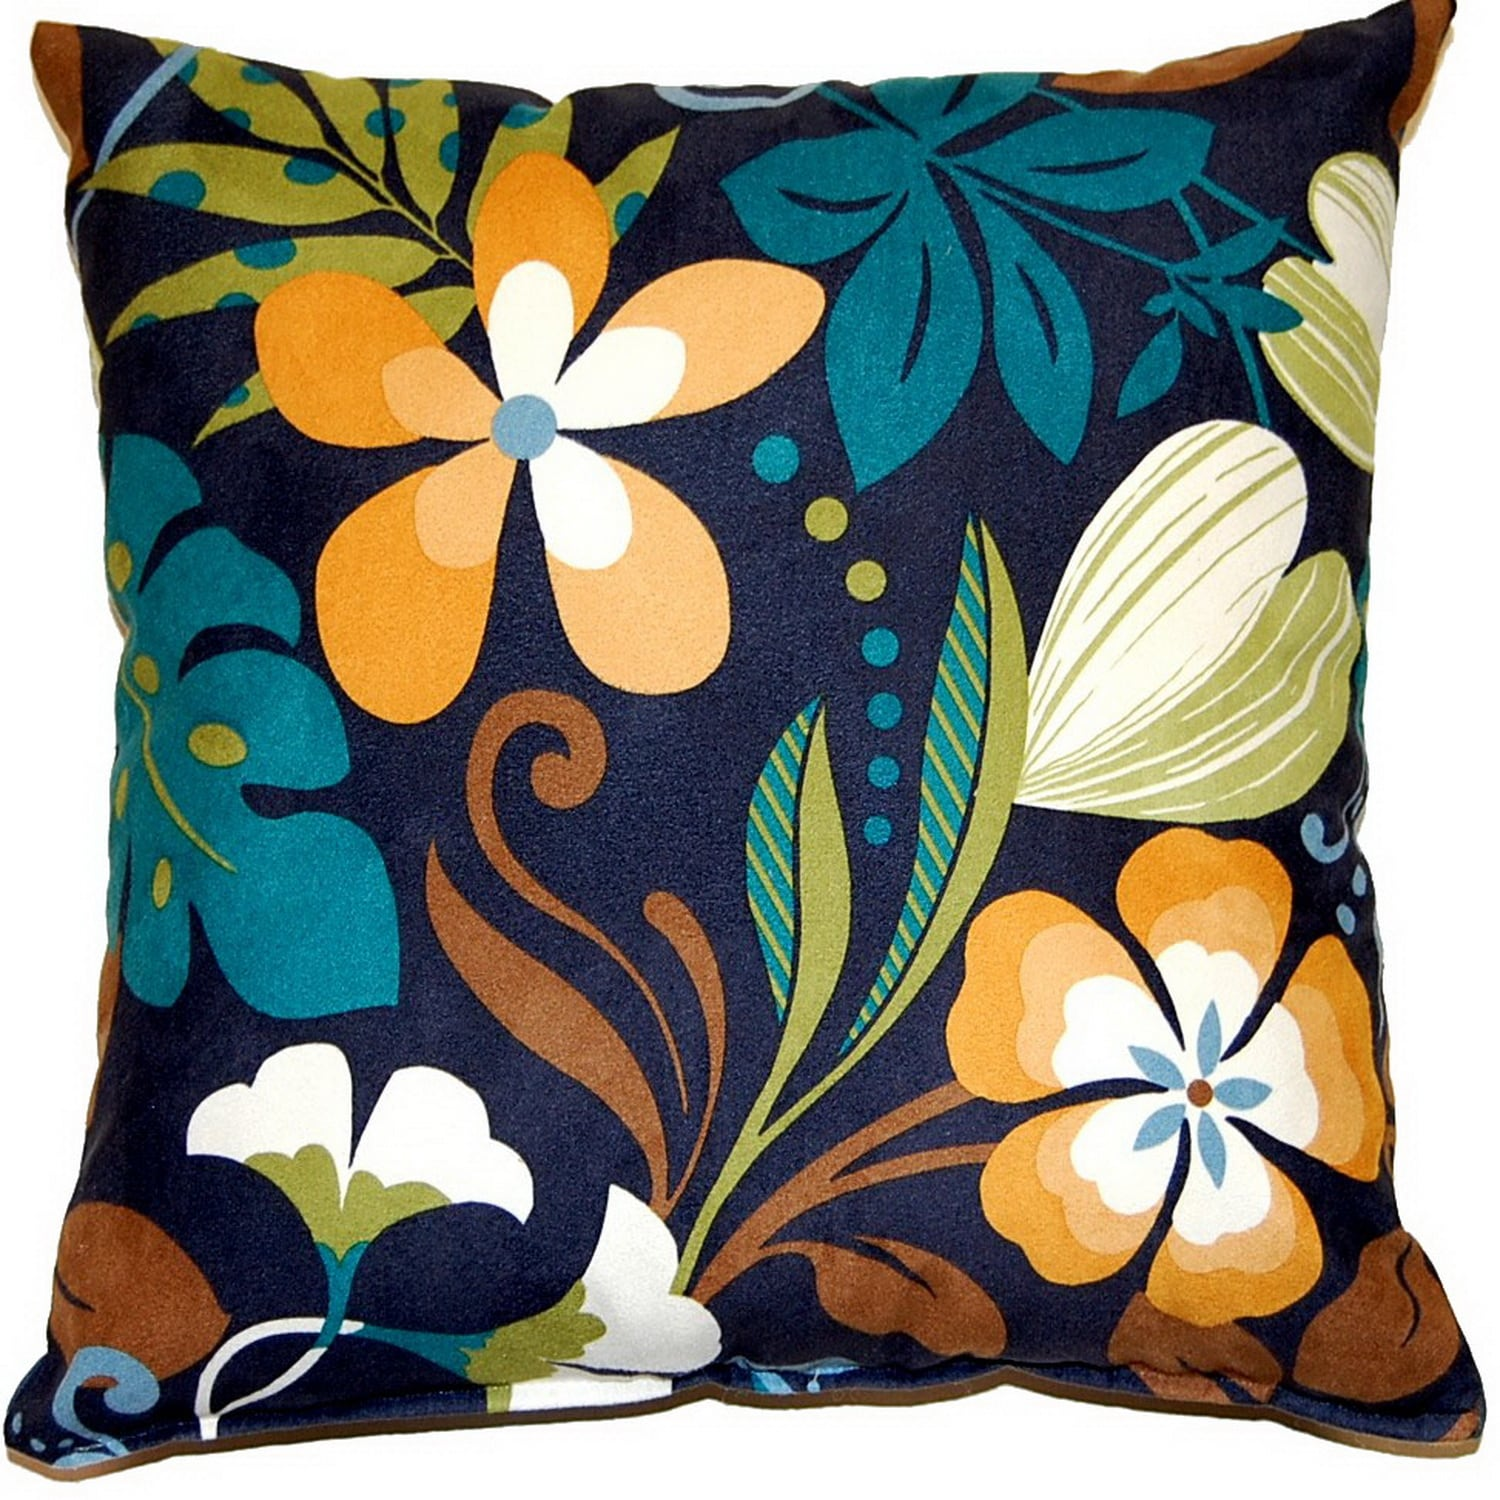 Fox Hill Trading Funfloral Marine 17-inch Throw Pillows (Set of 2)